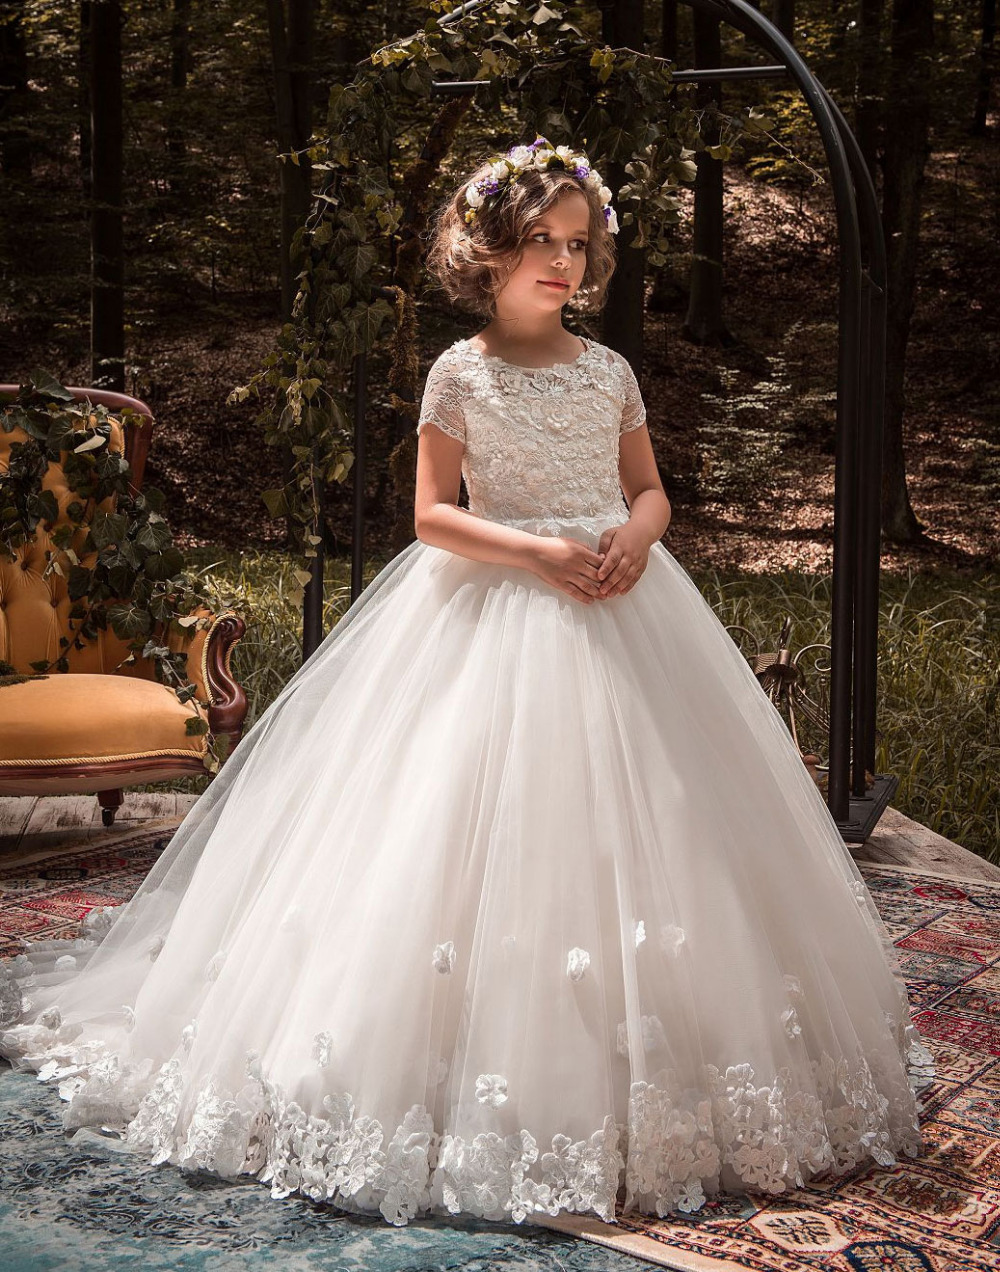 Short Sleeves Lace Tulle Flower Girl Dress Mermaid White Vintage Floral Appliques Kids Holy Communion Ball Gowns with Train